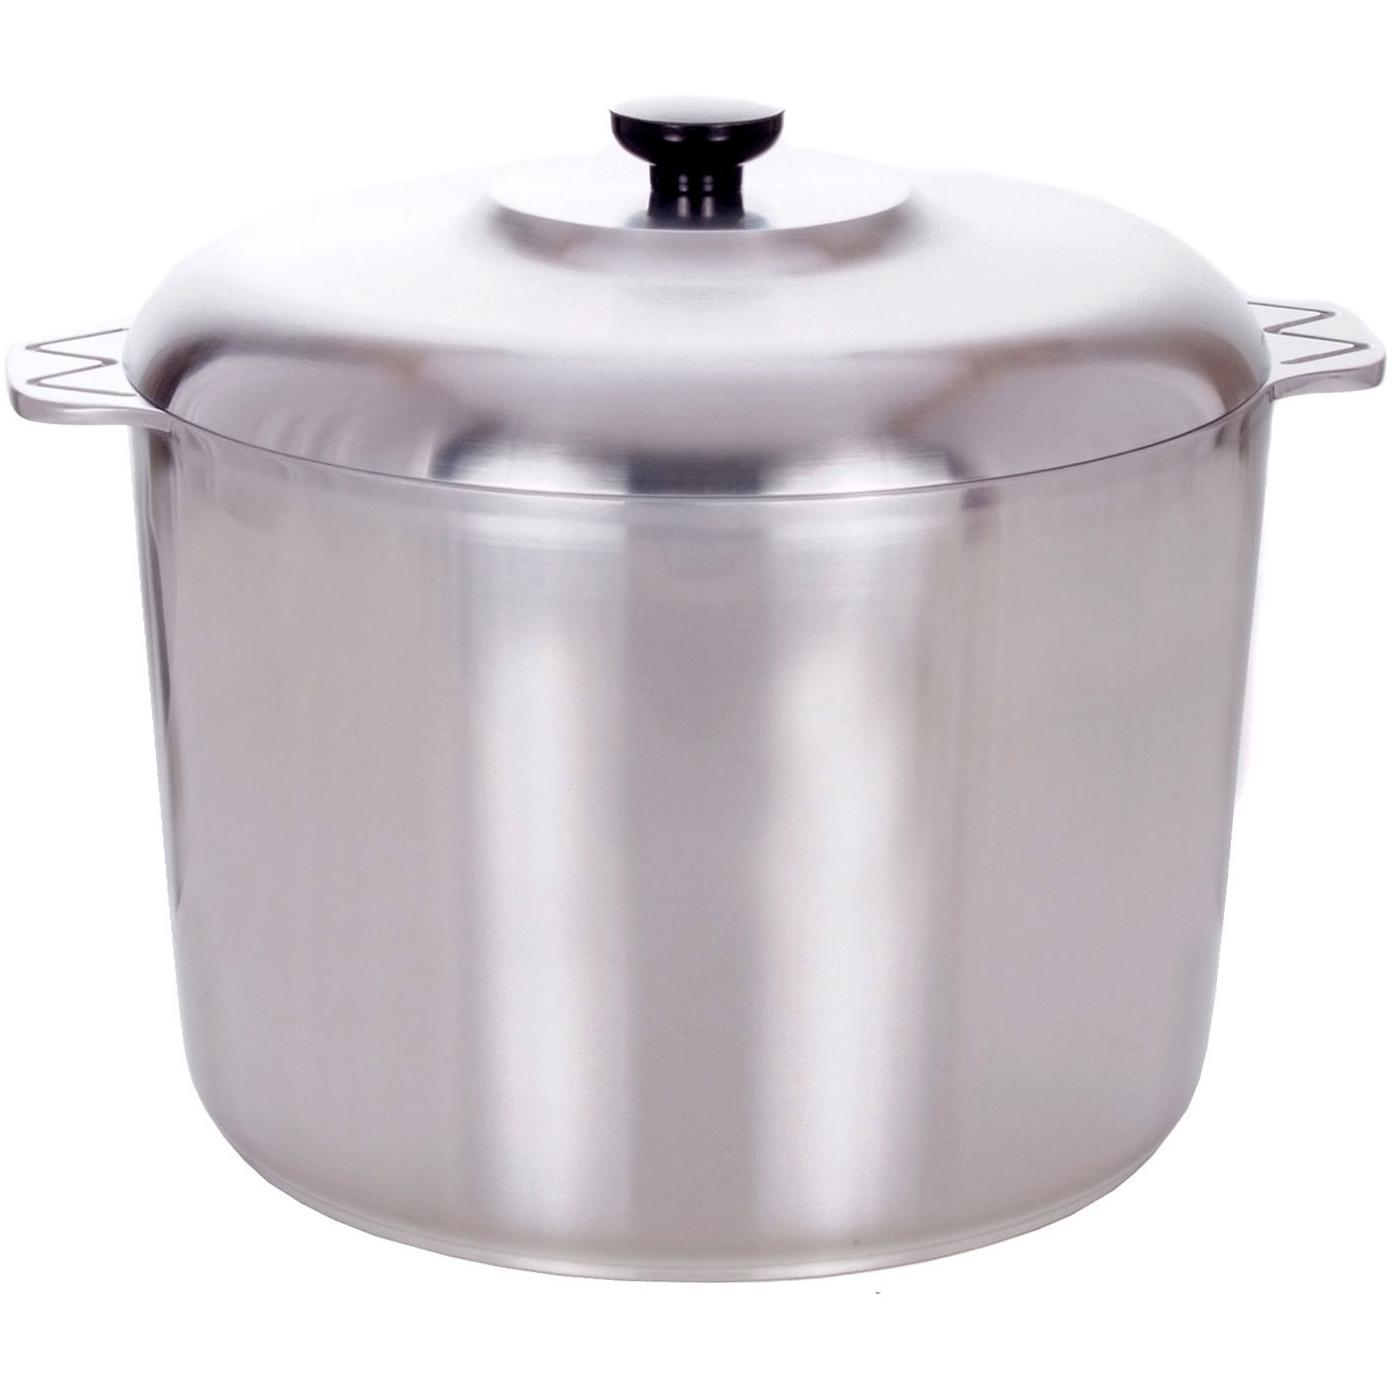 Cajun Cookware Pots 10 Quart Aluminum Stock Pot